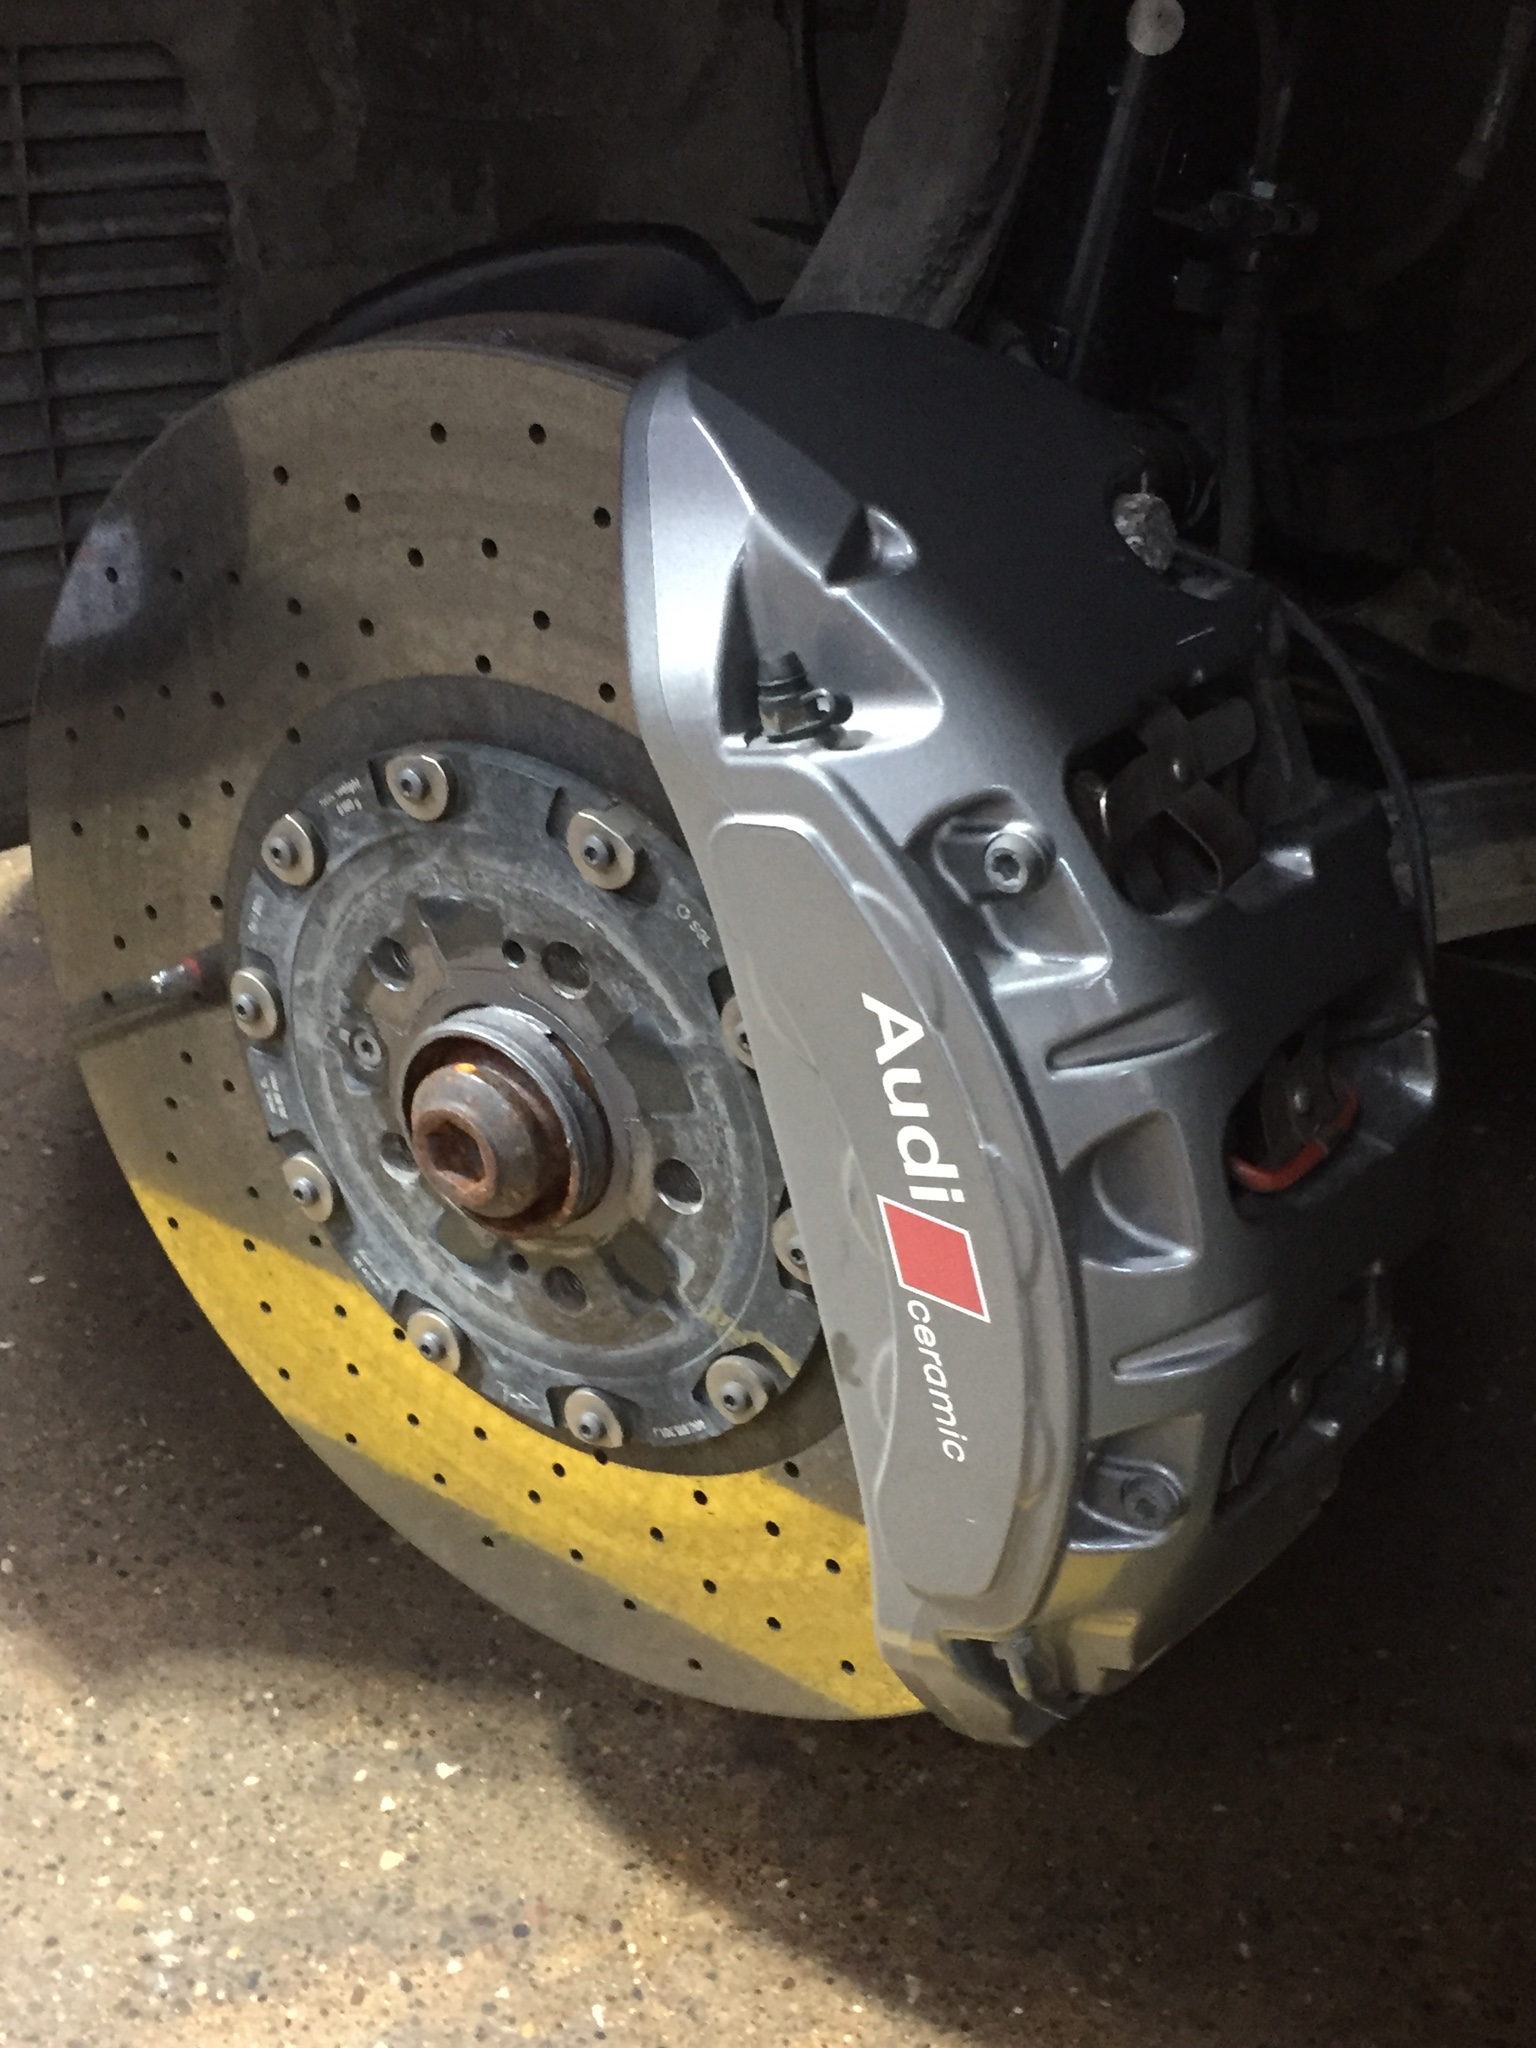 carbon ceramic brakes - Page 2 - Tuning and Modifications